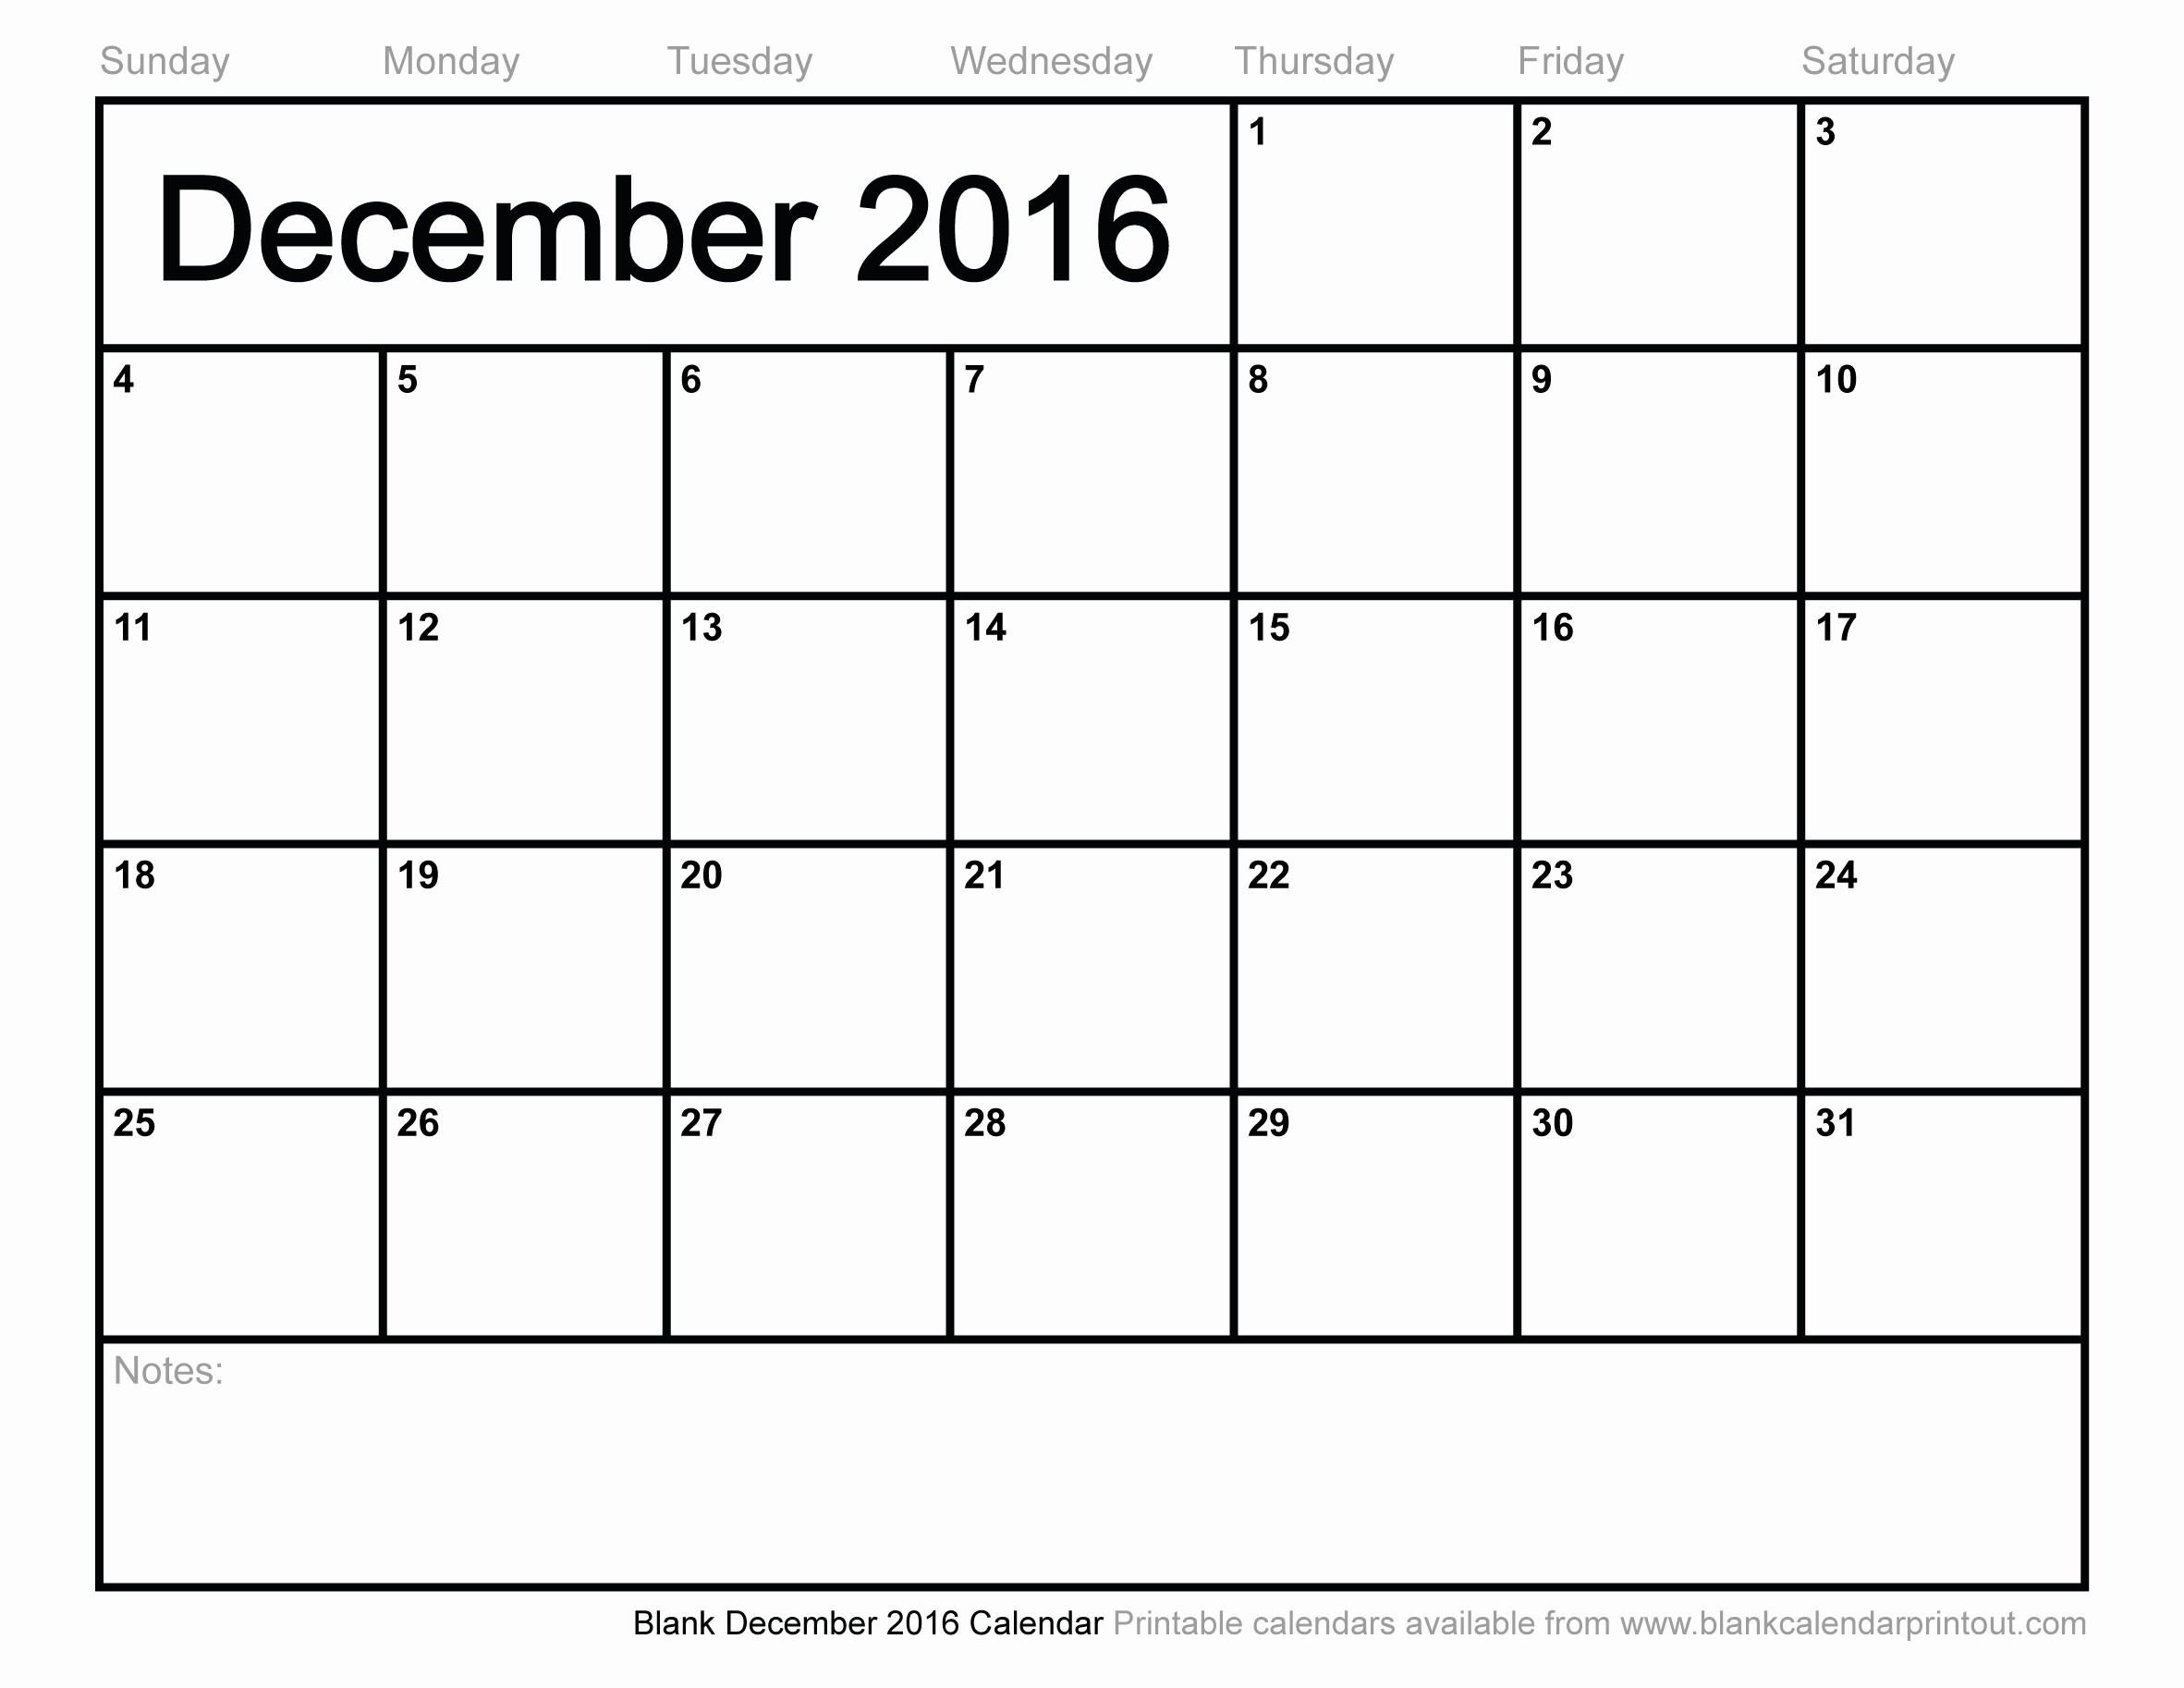 Blank December Calendar 2016 Printable Best Of Blank December 2016 Calendar to Print